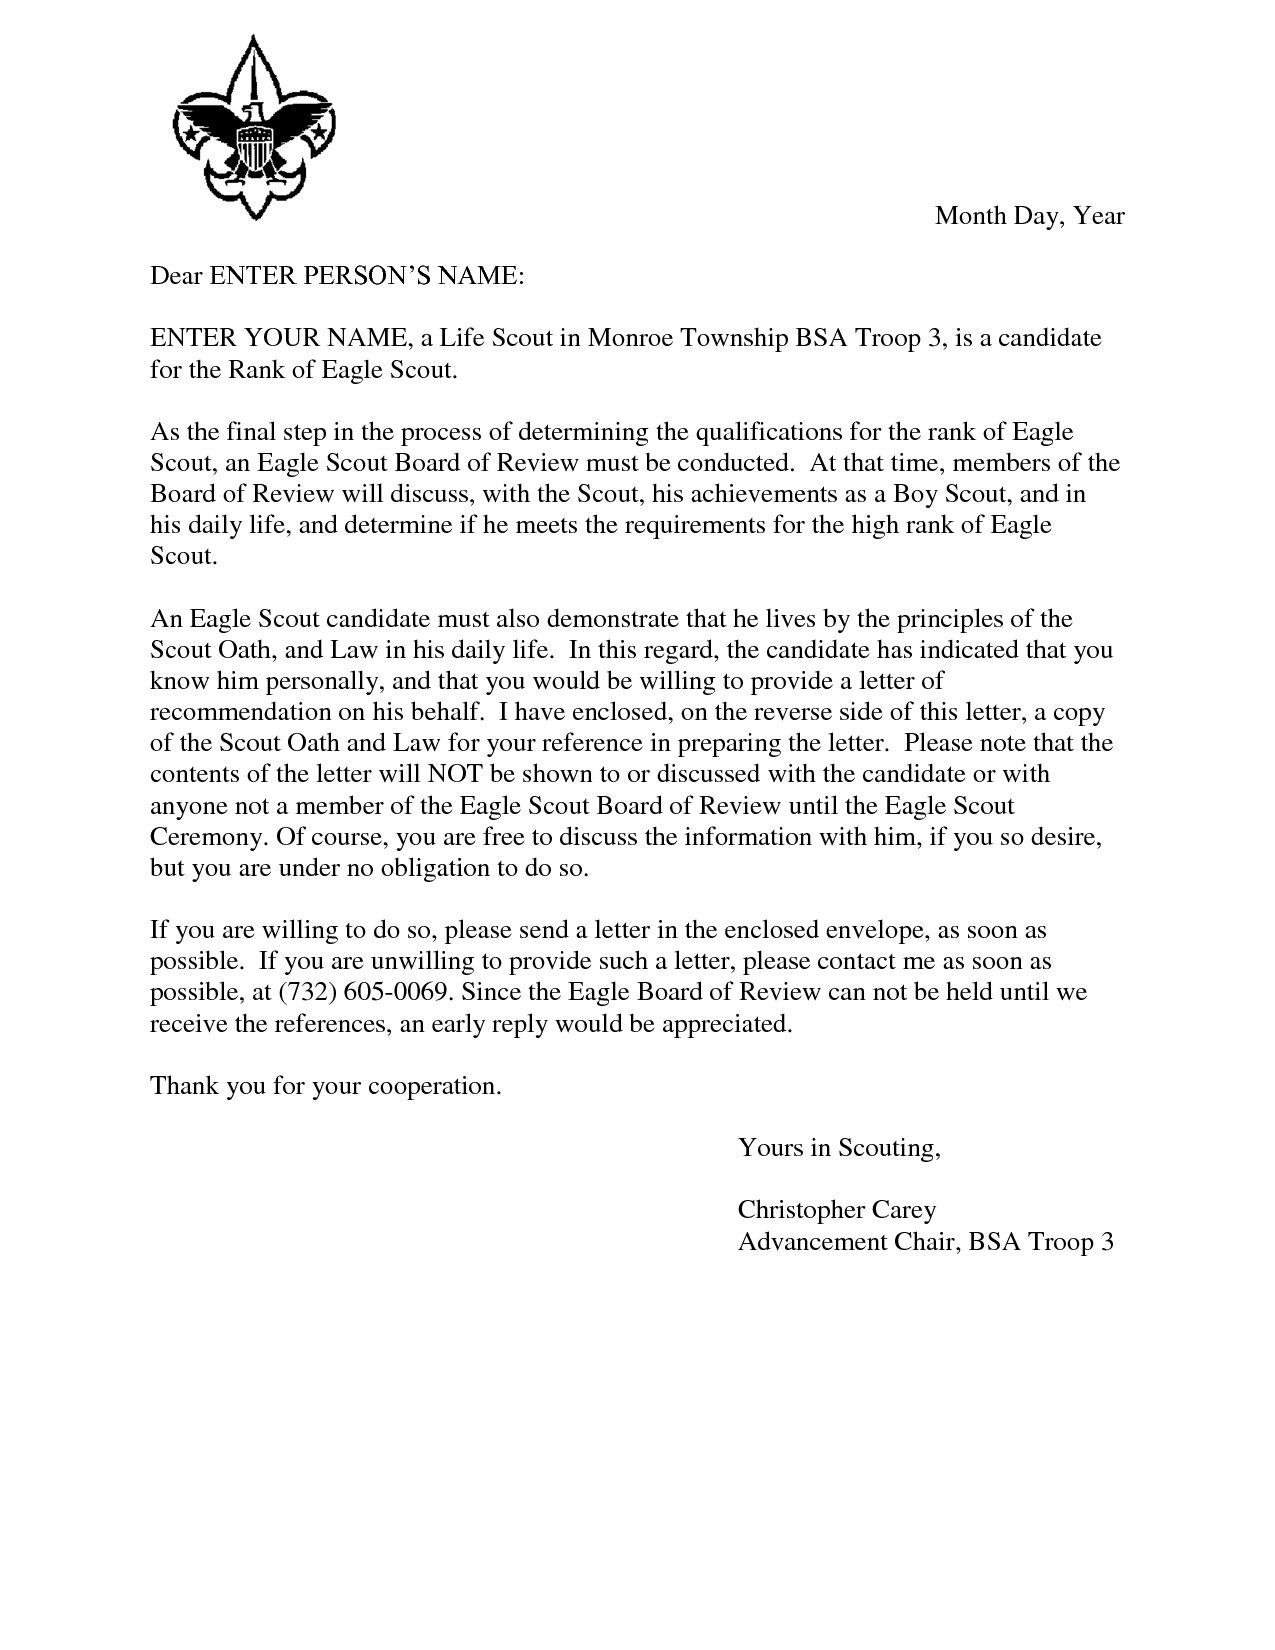 Letter Of Recommendation Request Template - Eagle Scout Reference Request Sample Letter Doc 7 by Hfr990q